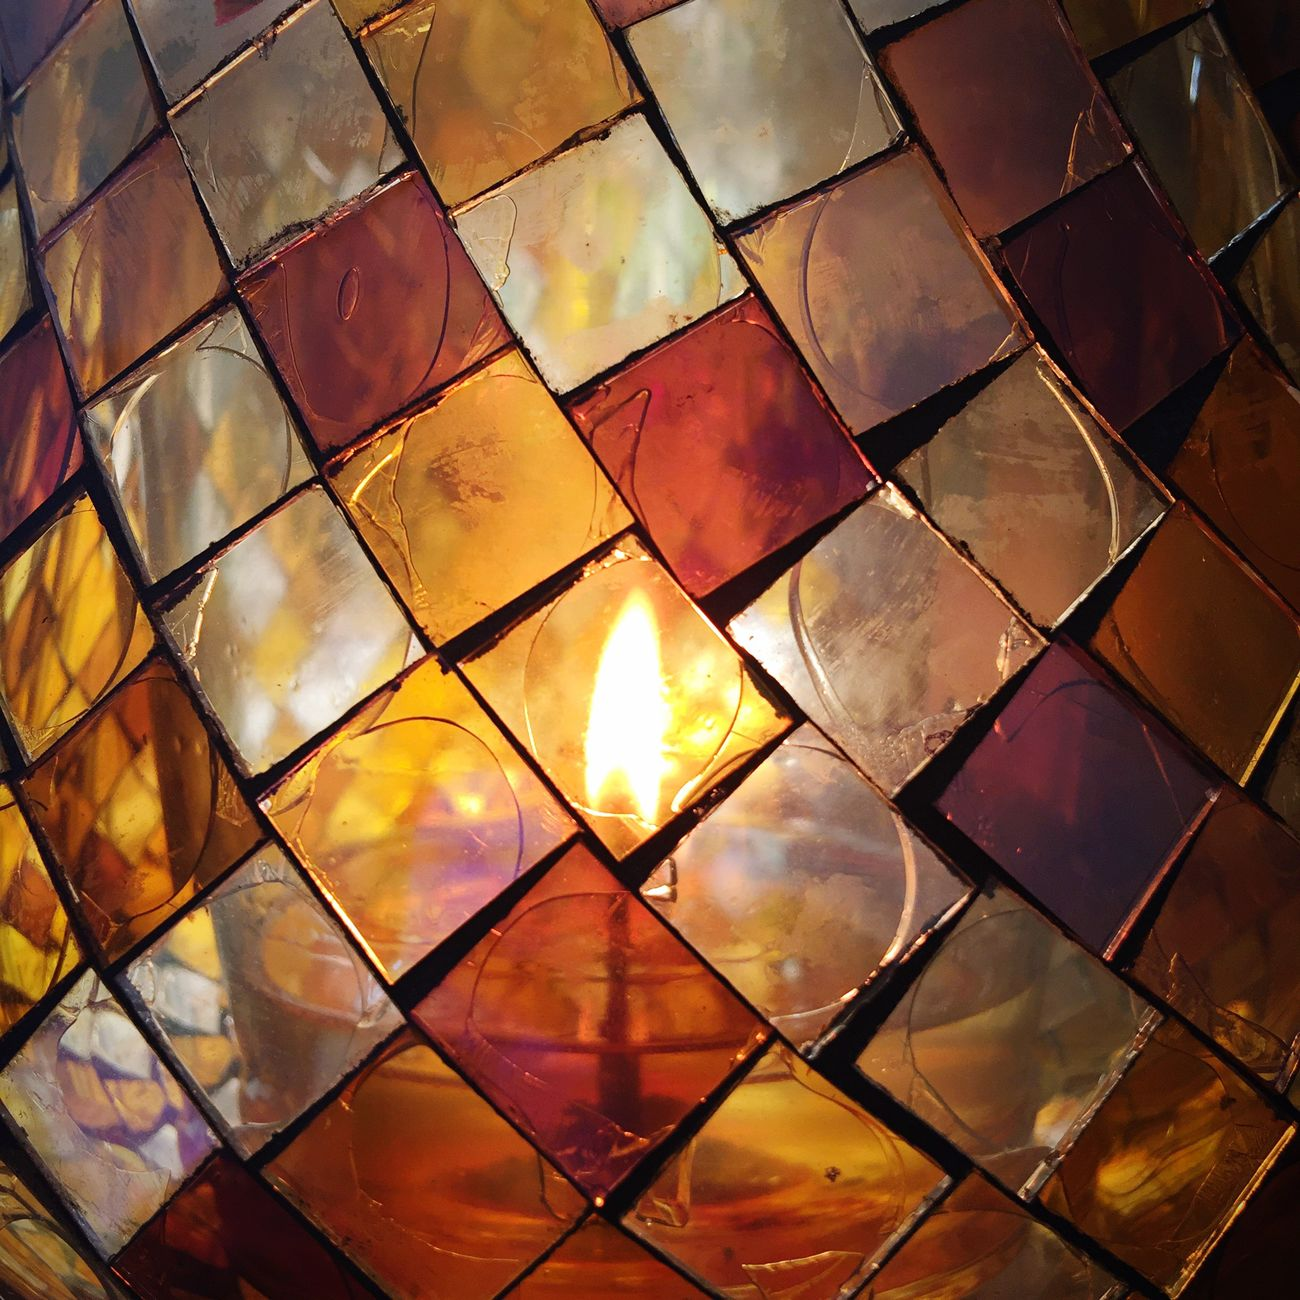 Candle light Stained Glass Candle Light Candle Flame Candle Taking Photos Taking Pictures Photography EyeEm Gallery Check This Out EyeEmBestPics Lines, Shapes And Curves Picoftheday EyeEm